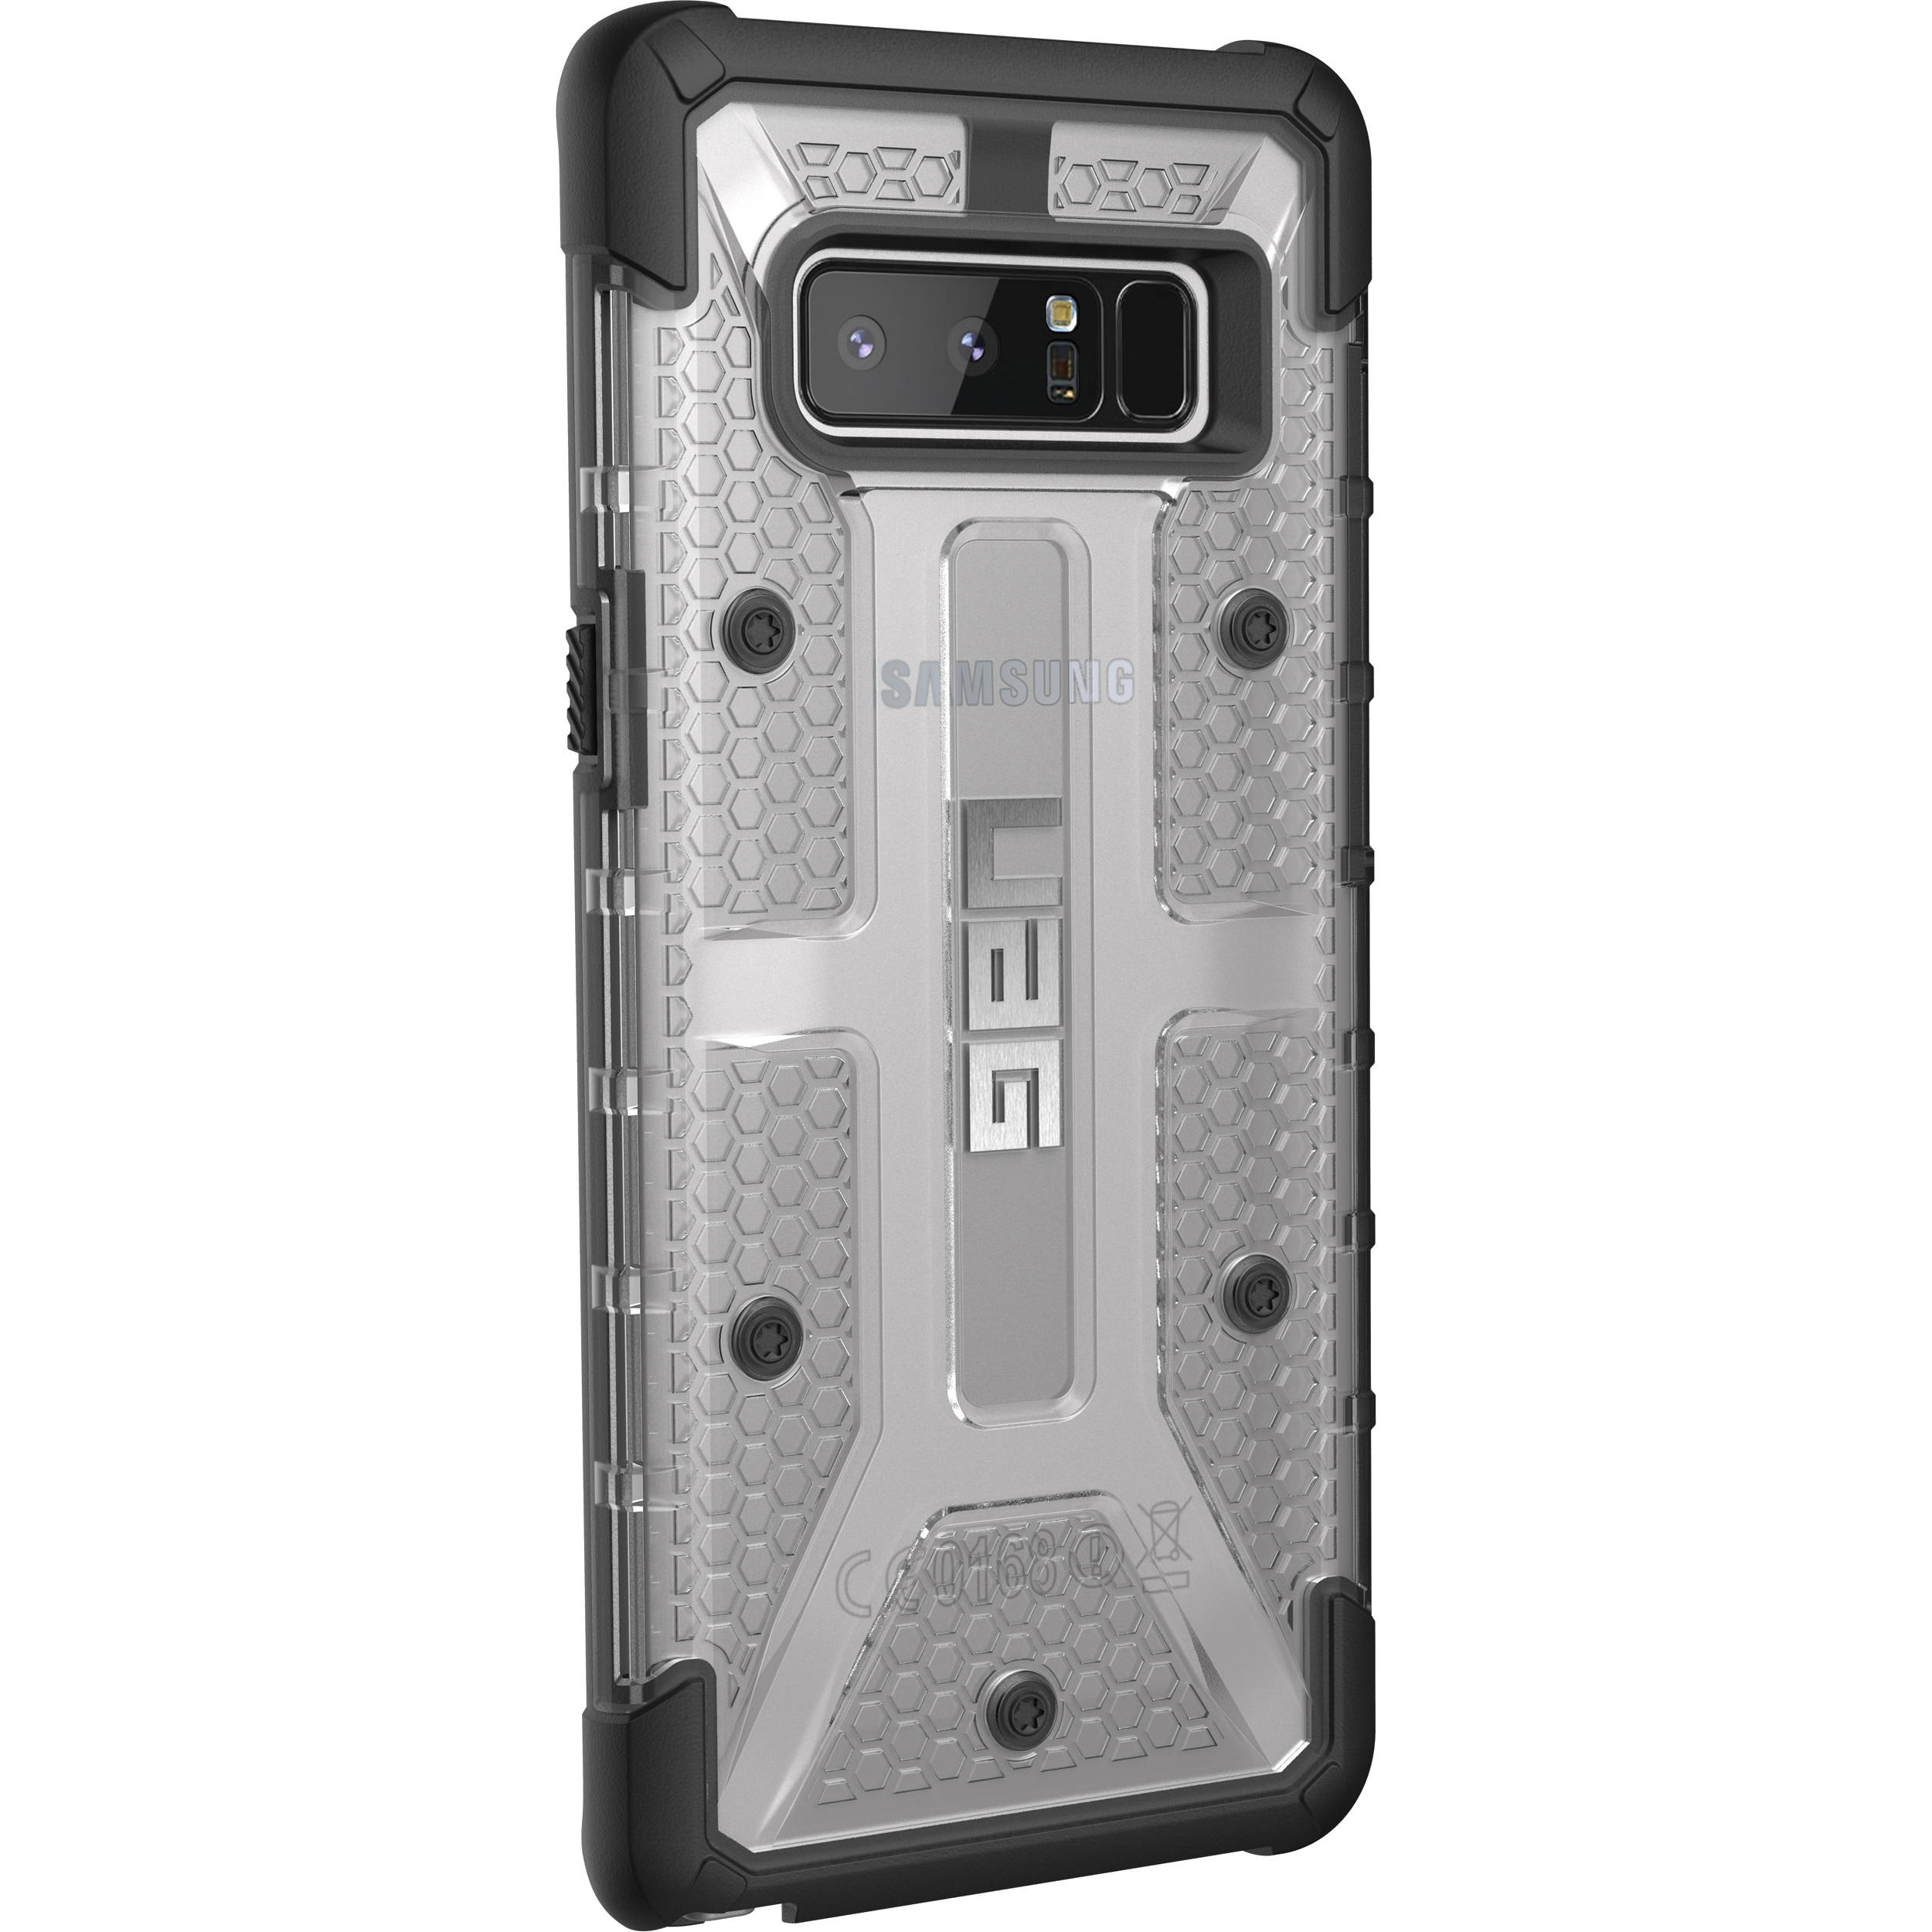 separation shoes 35abe 7408f Urban Armor Gear Plasma Case for iPhone 6 Plus/6s Plus/7 Plus/8 Plus (Ice)